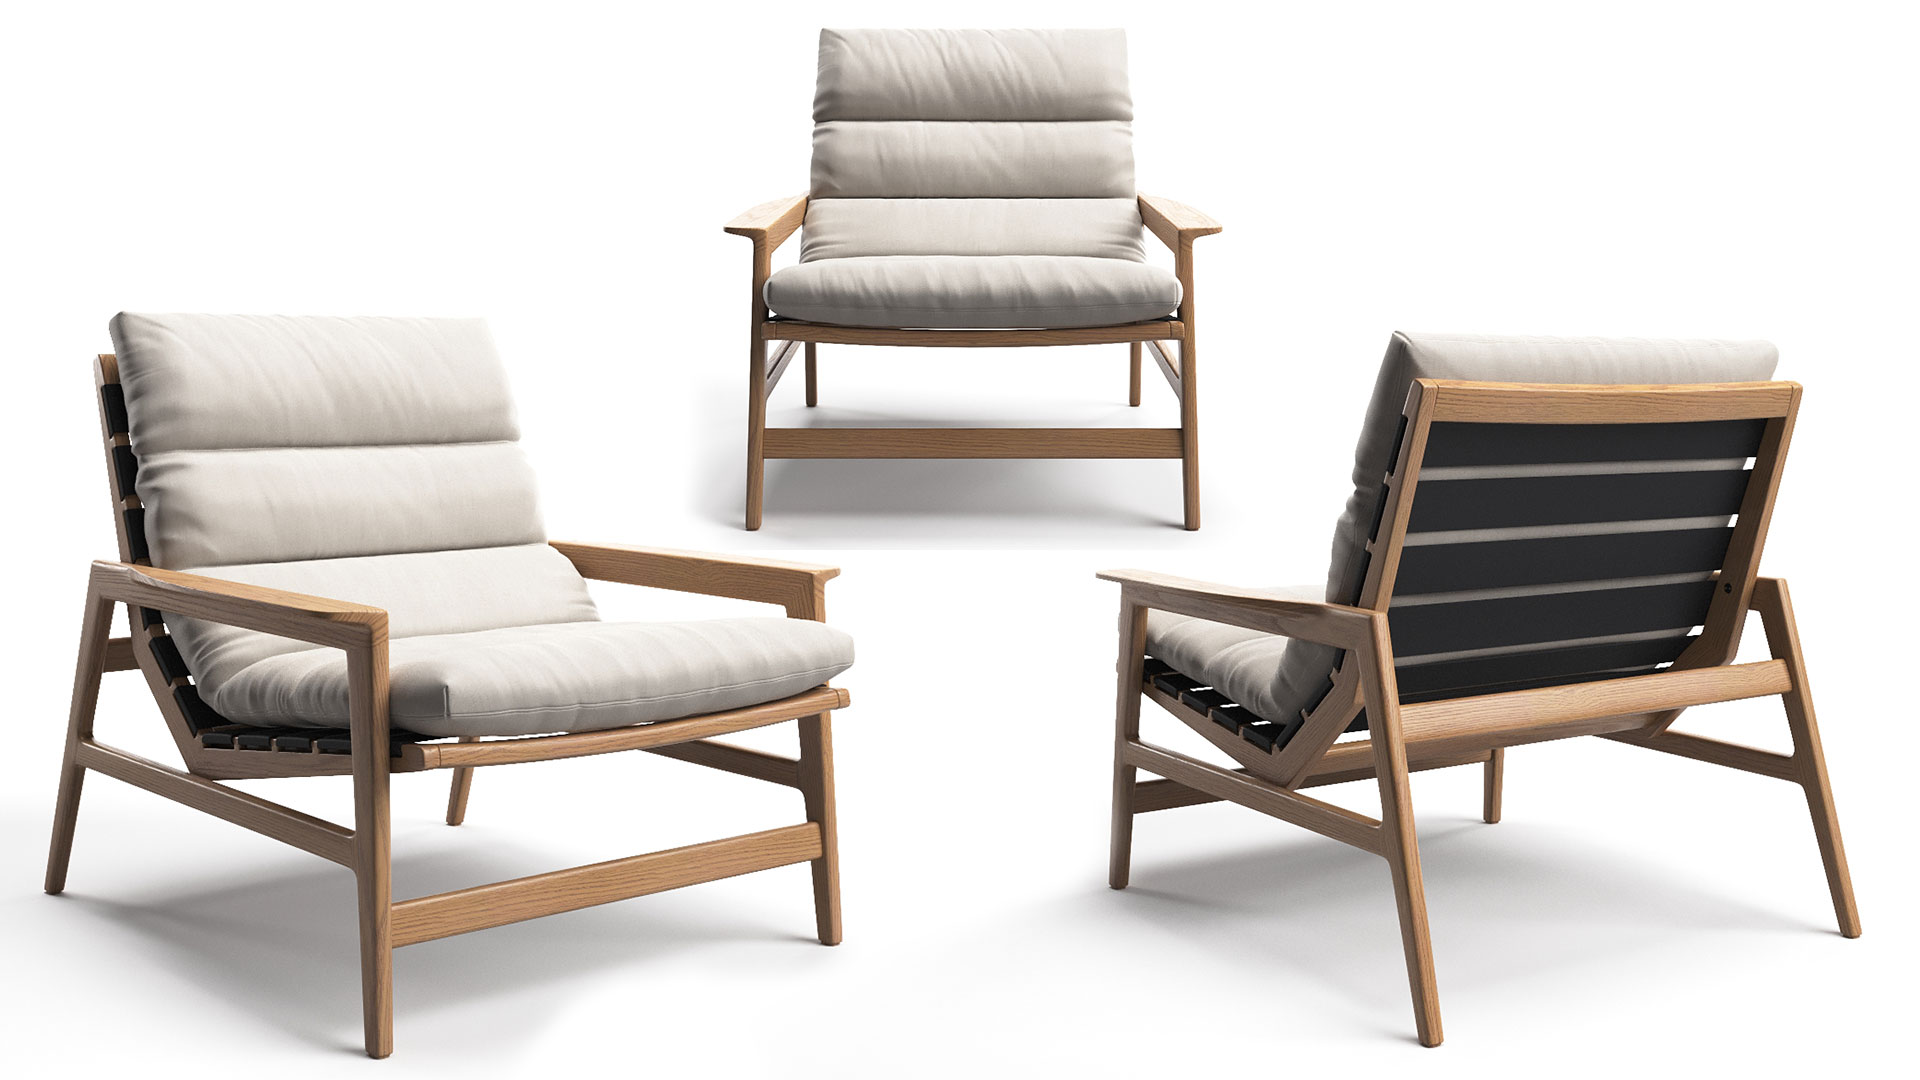 A Rendering Collage of Three Angles of the Same Chair